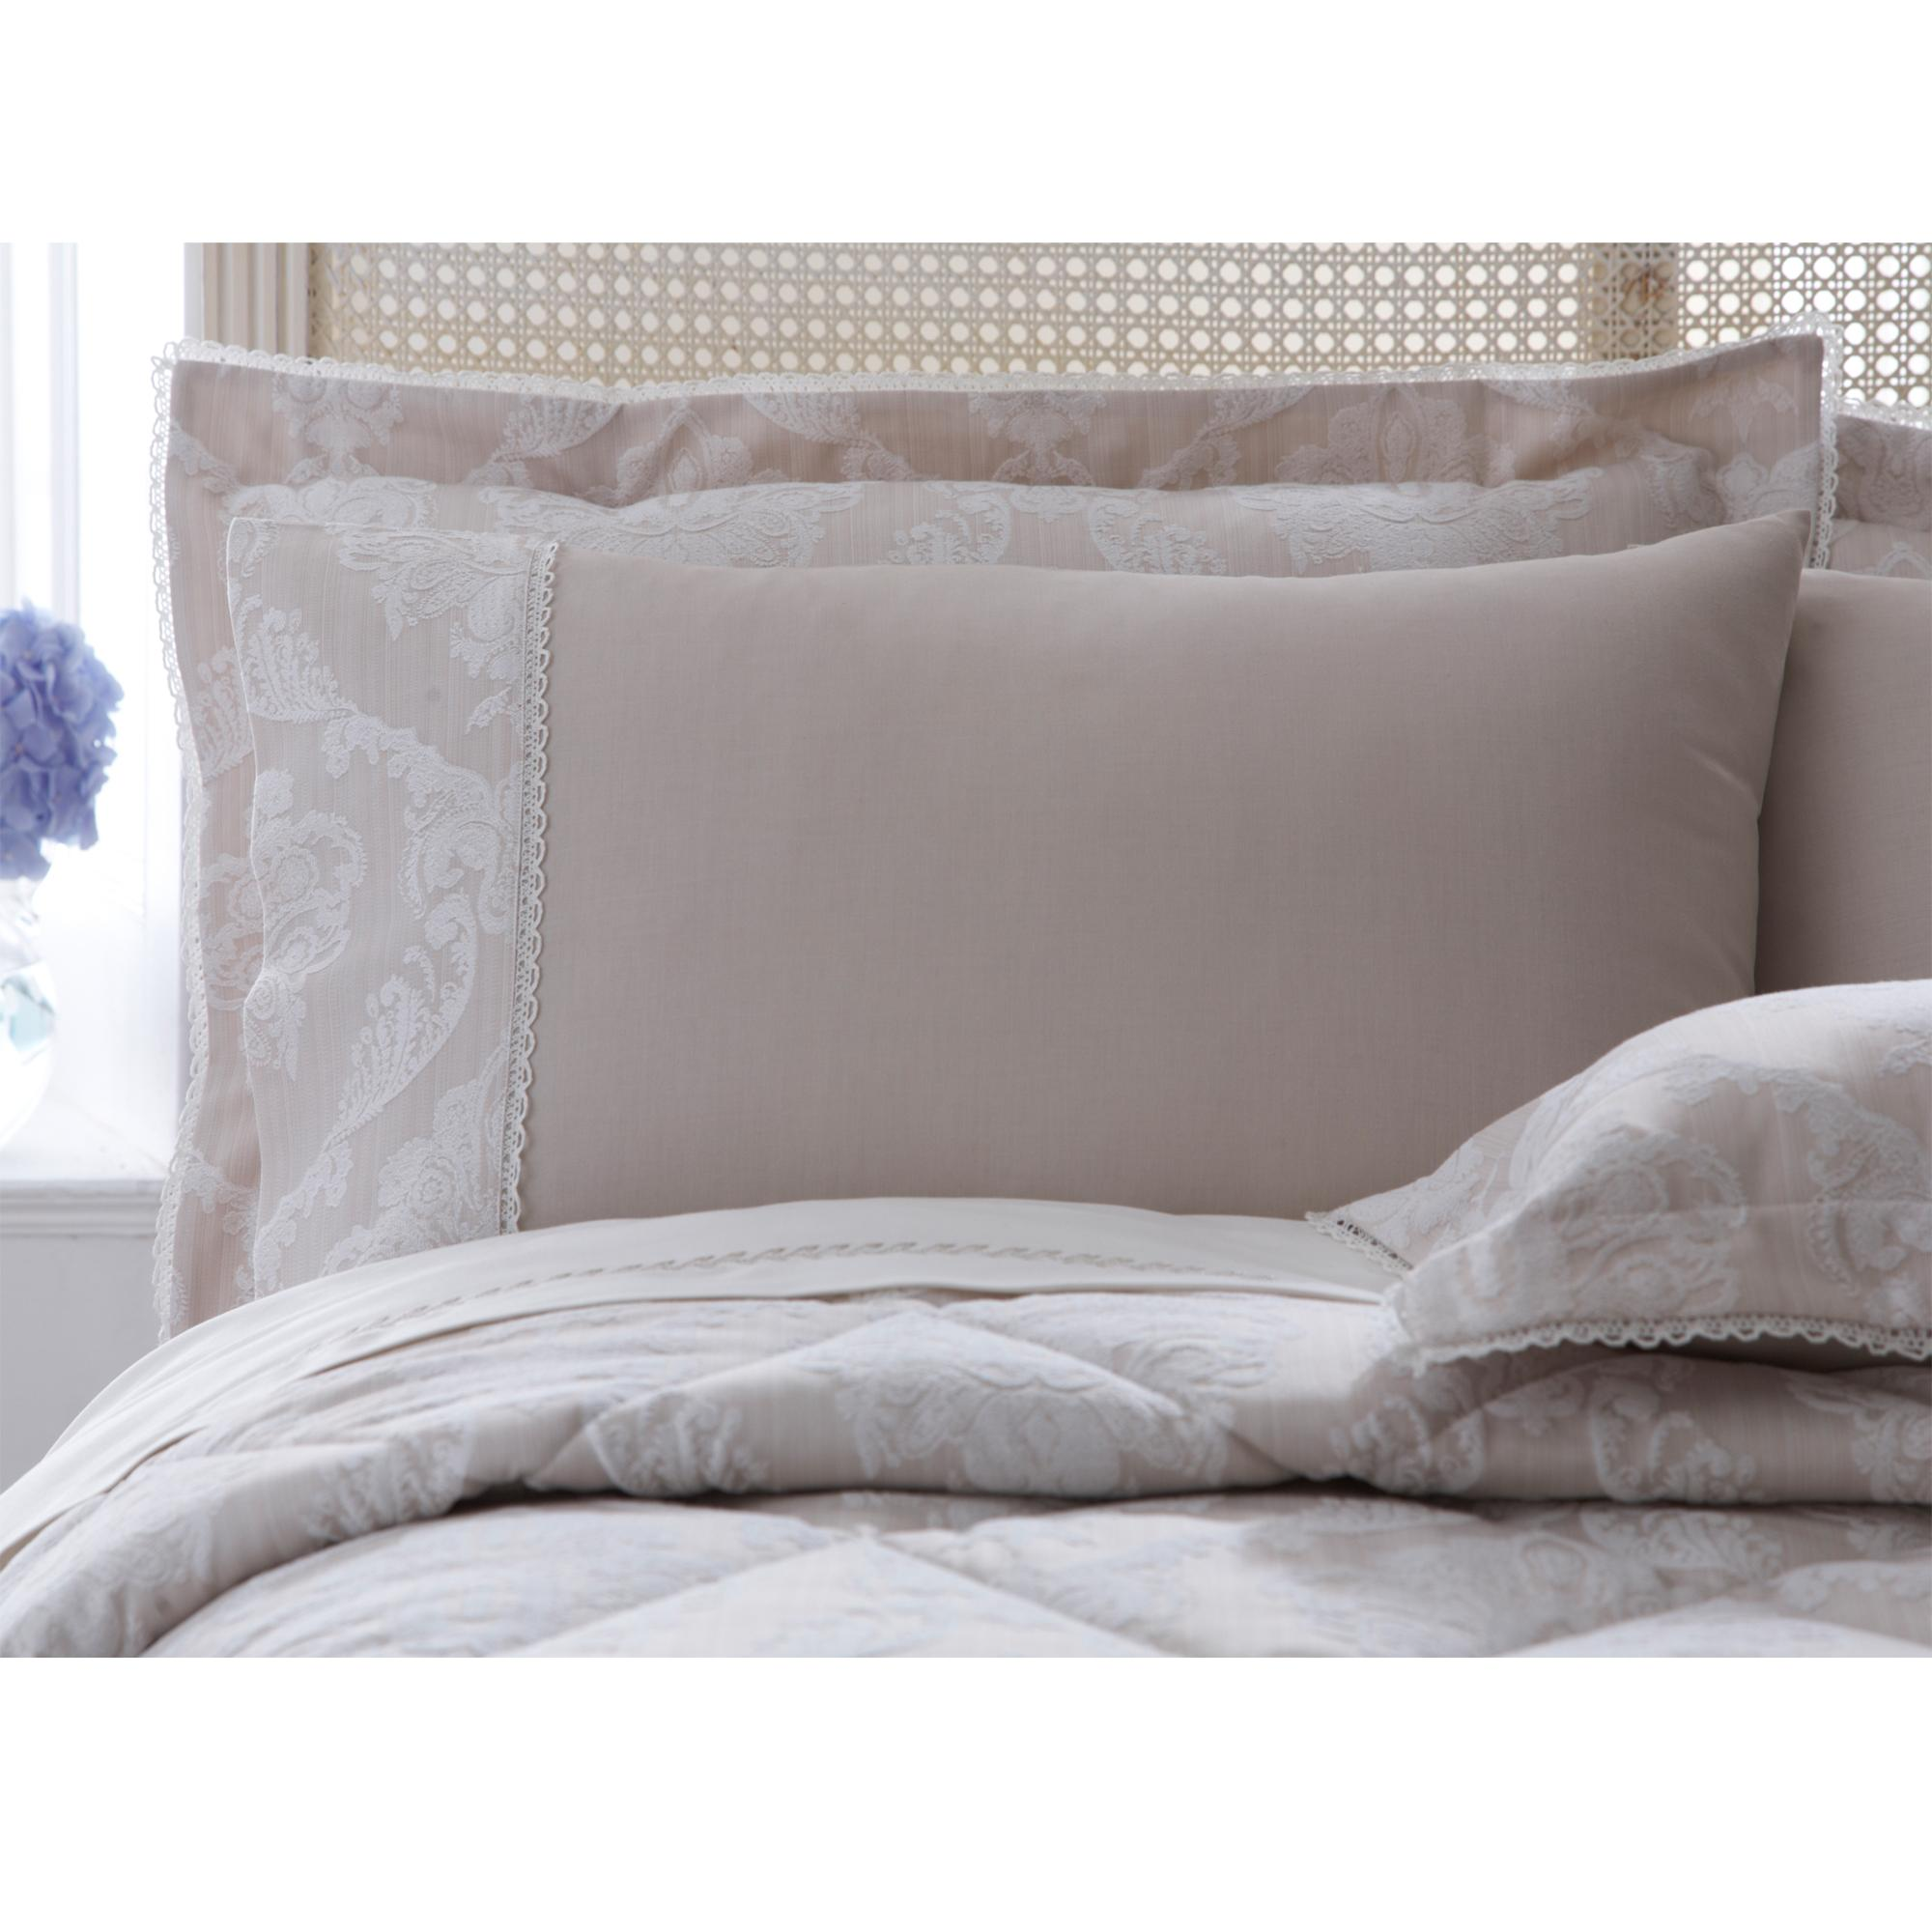 Dorma Natural Aveline Collection Cuffed Pillowcase